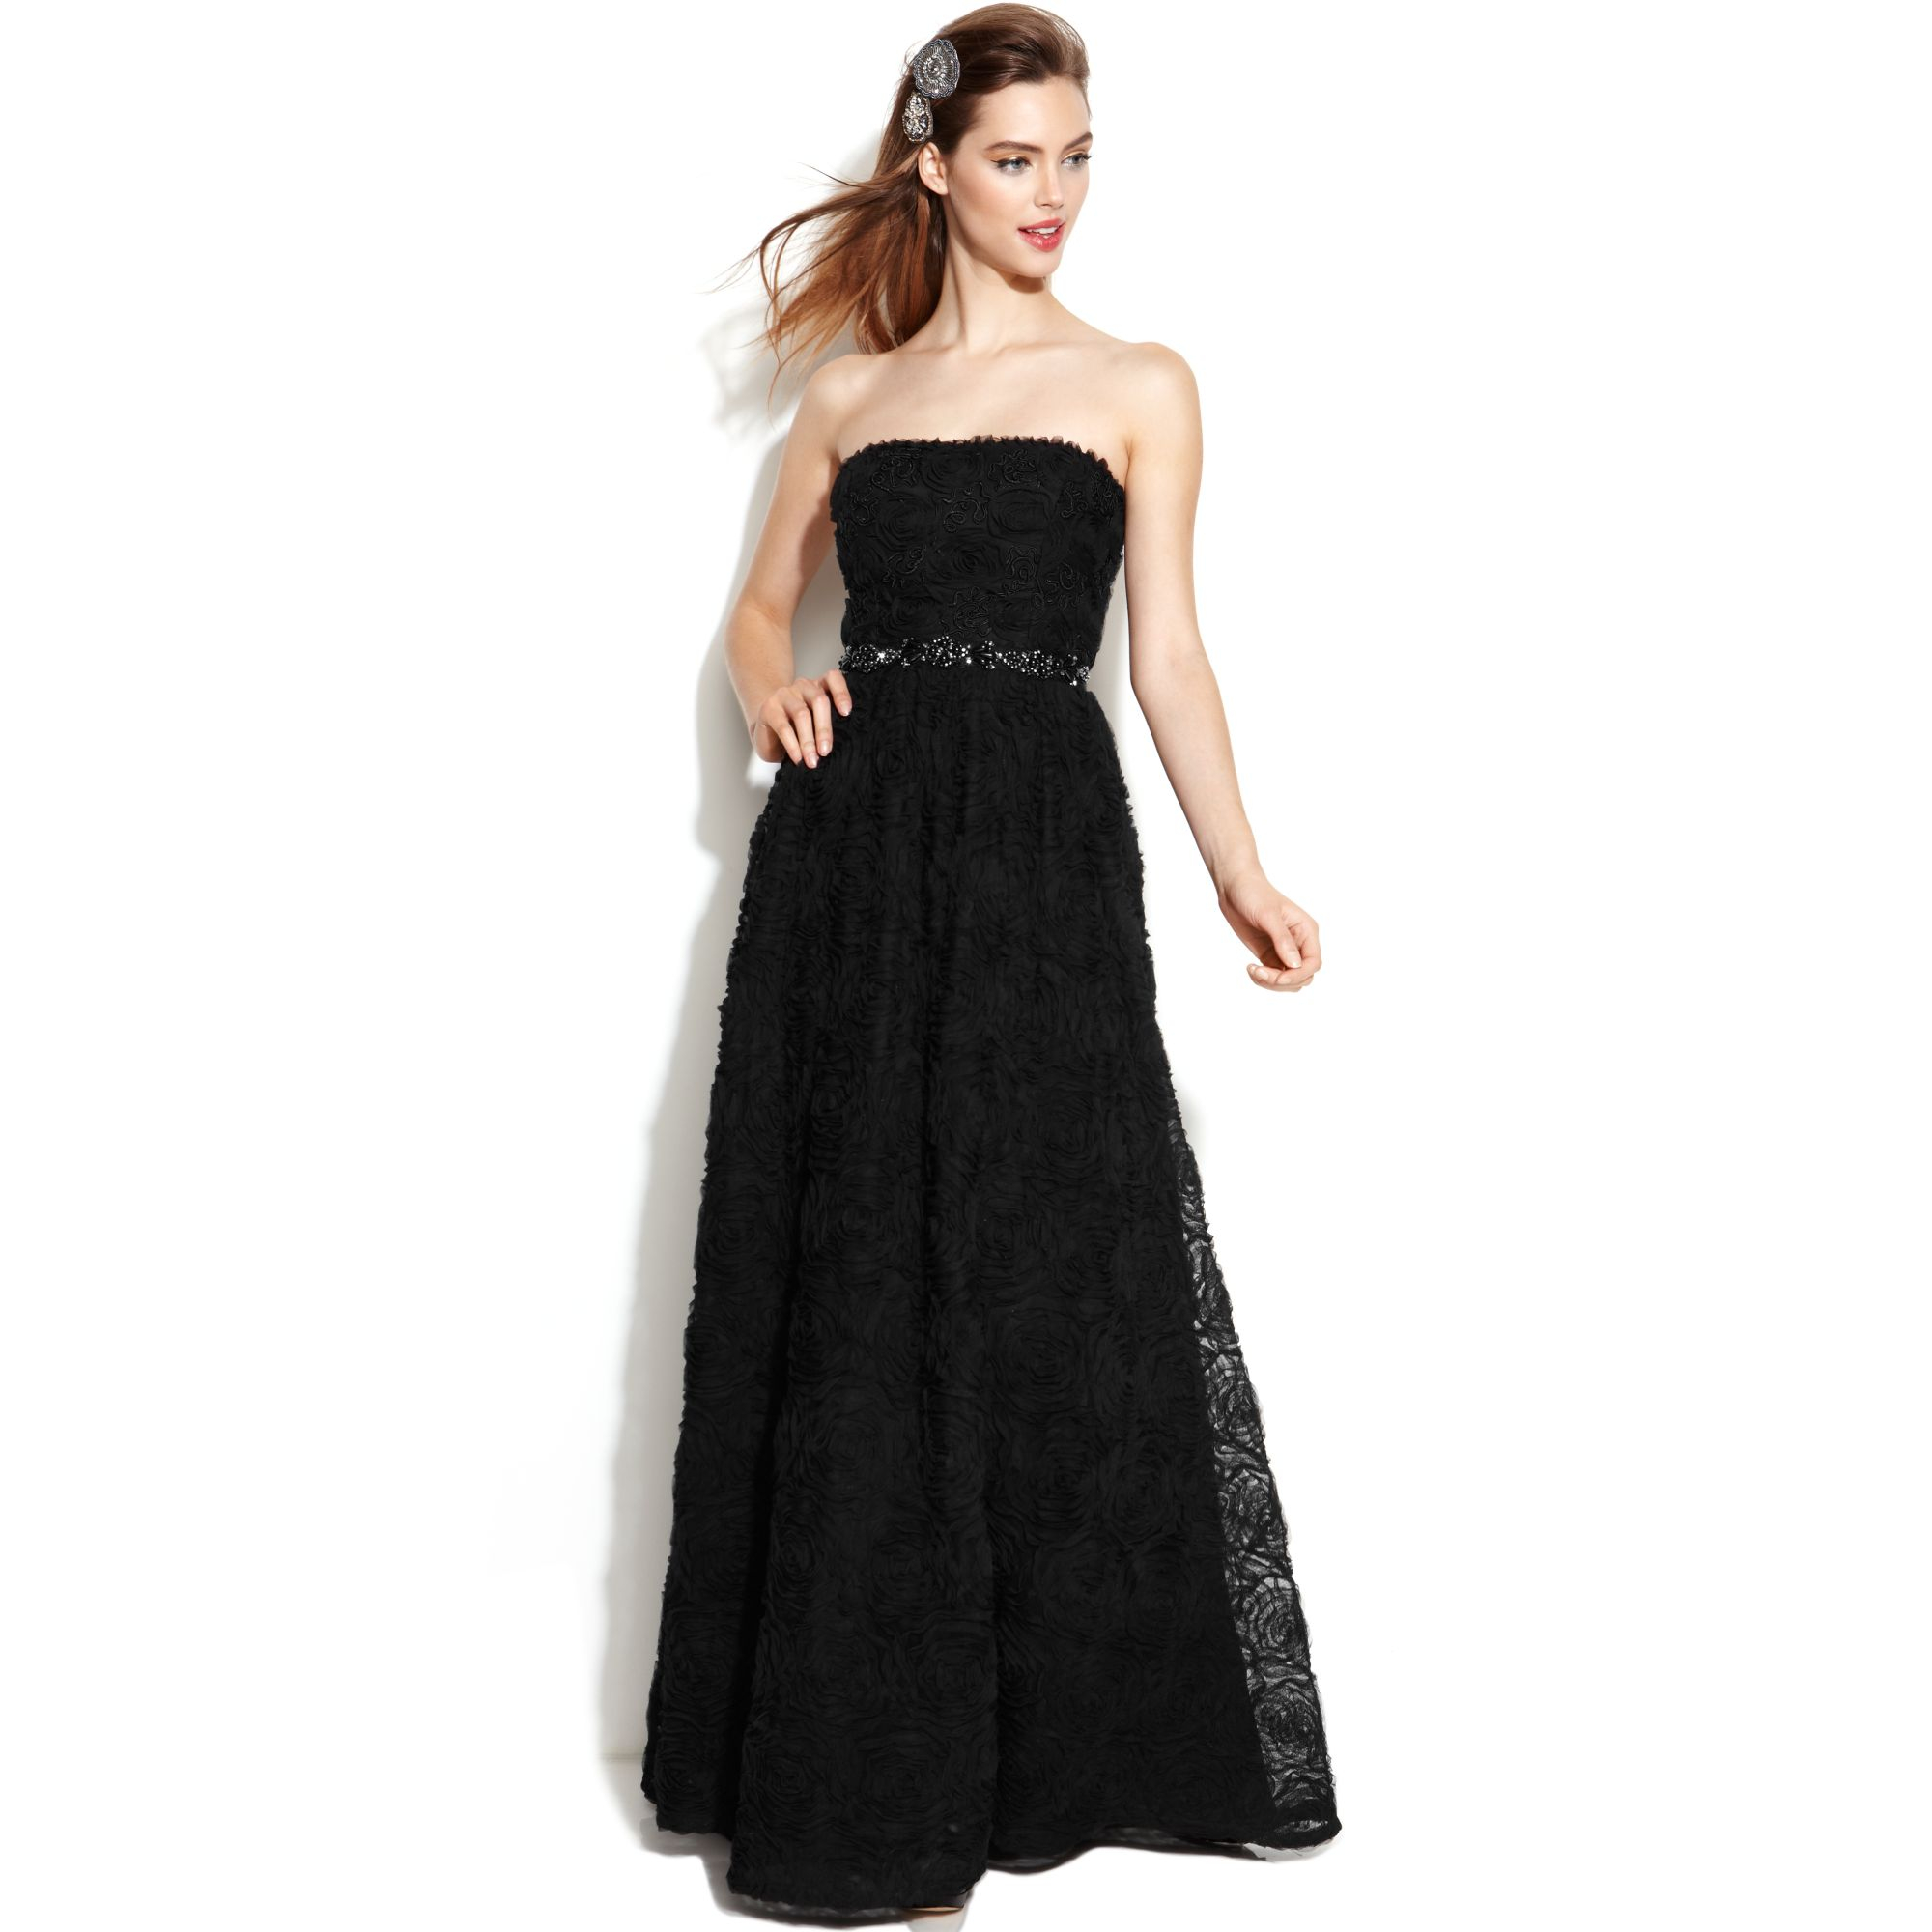 Adrianna papell Strapless Beaded Ball Gown in Black - Lyst